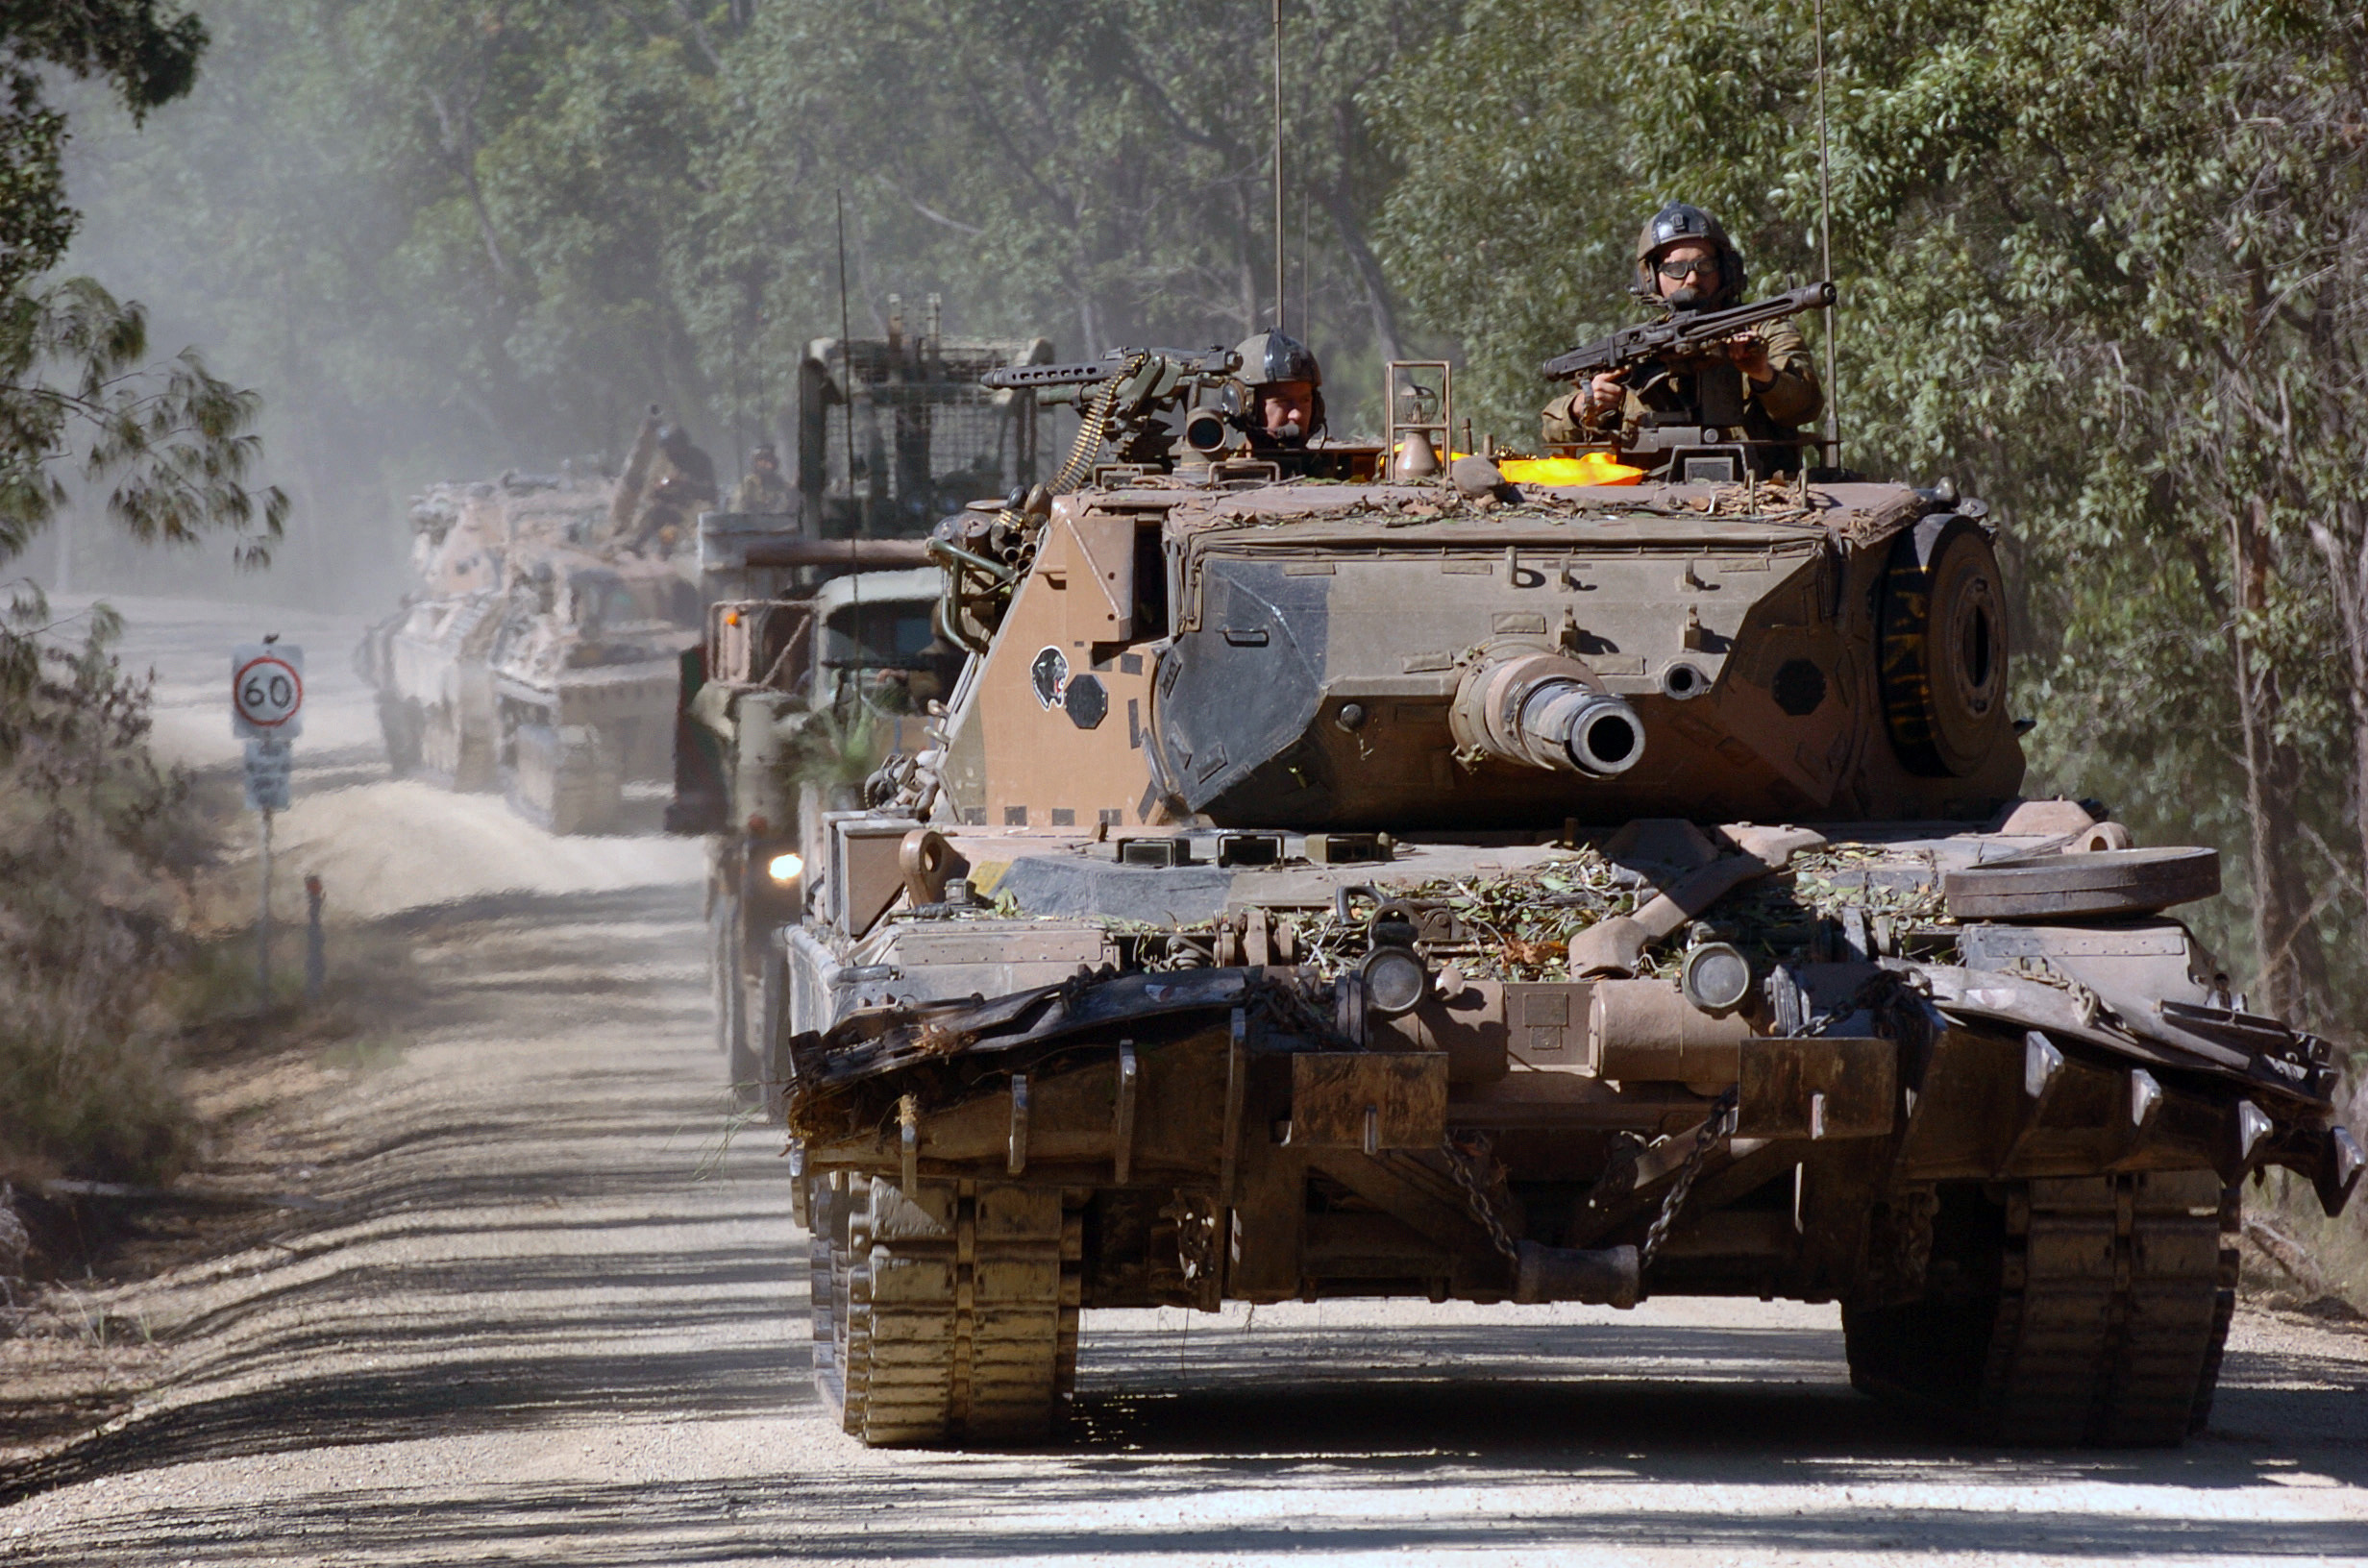 News • Australian Army Calvary Unit, 1st Armored Regiment, Prepares for Exercise Koolendong